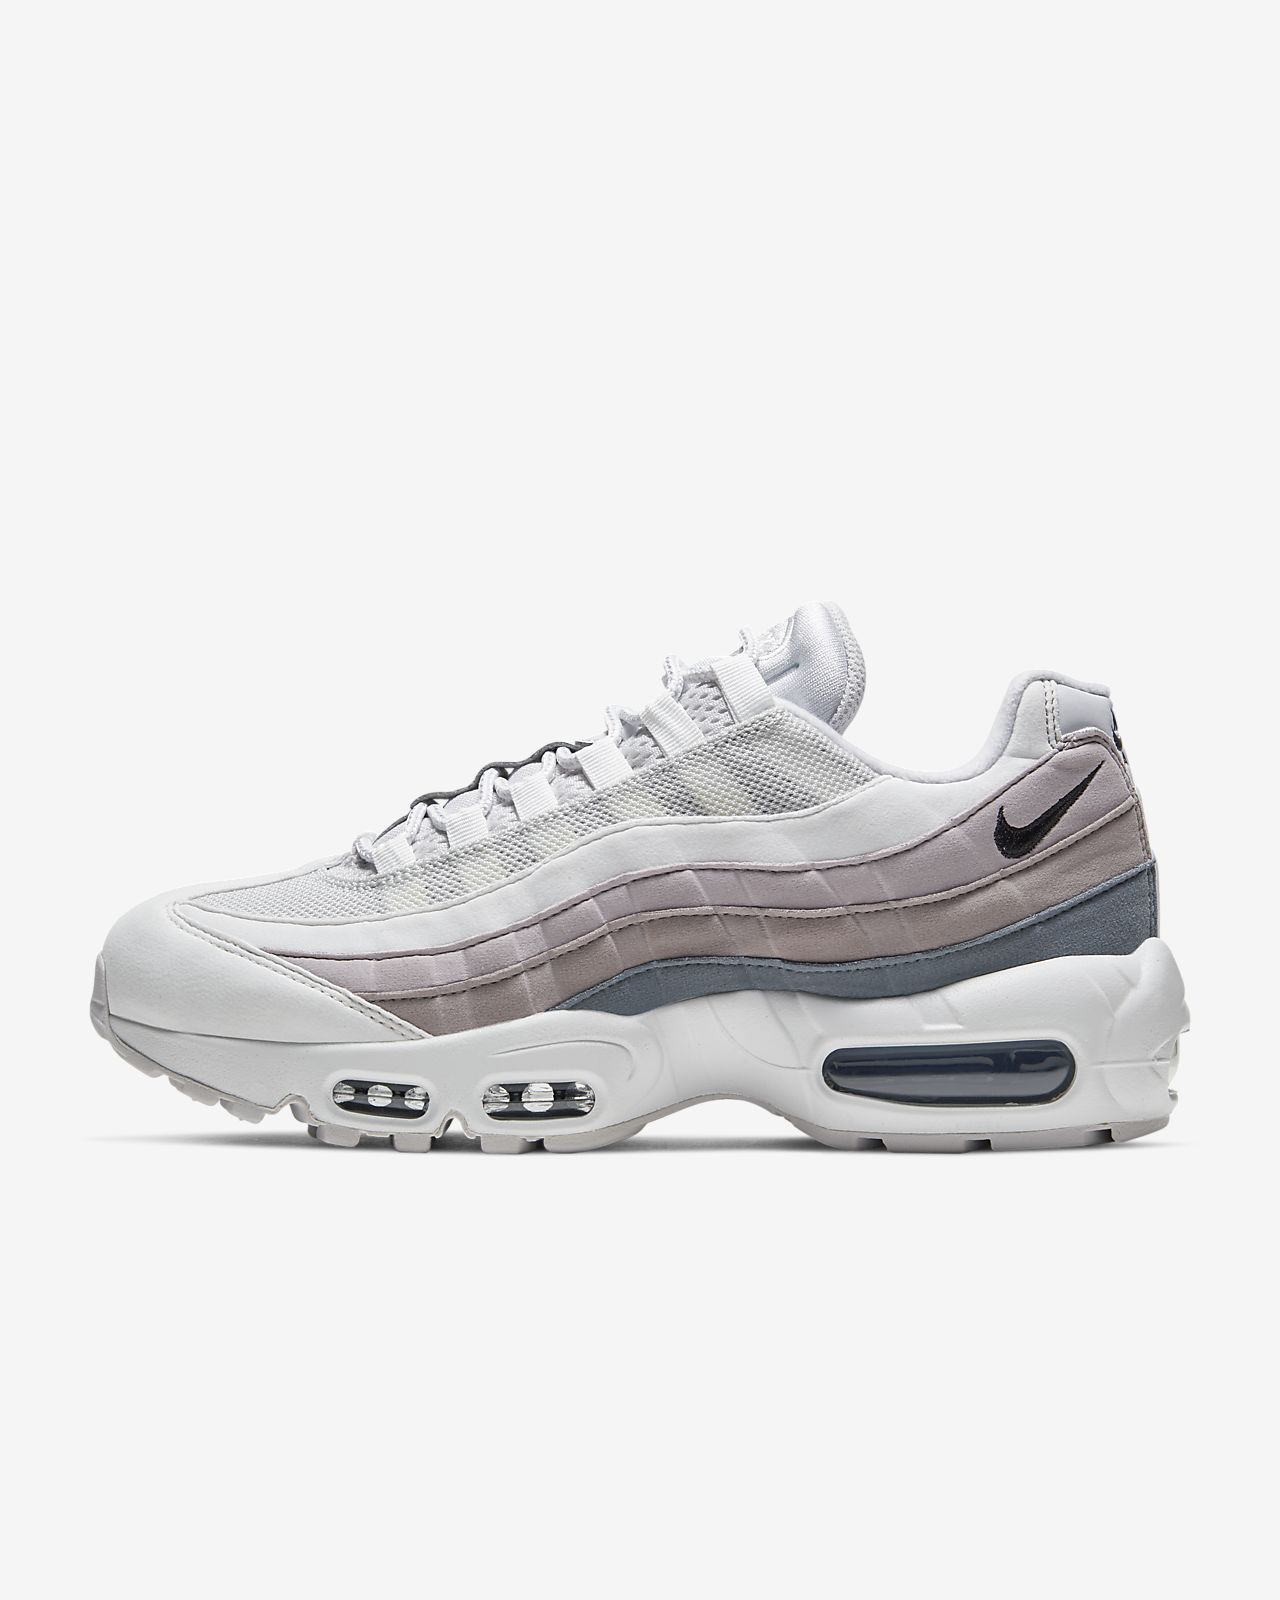 official photos e8dda 21166 ... Nike Air Max 95 Women s Shoe